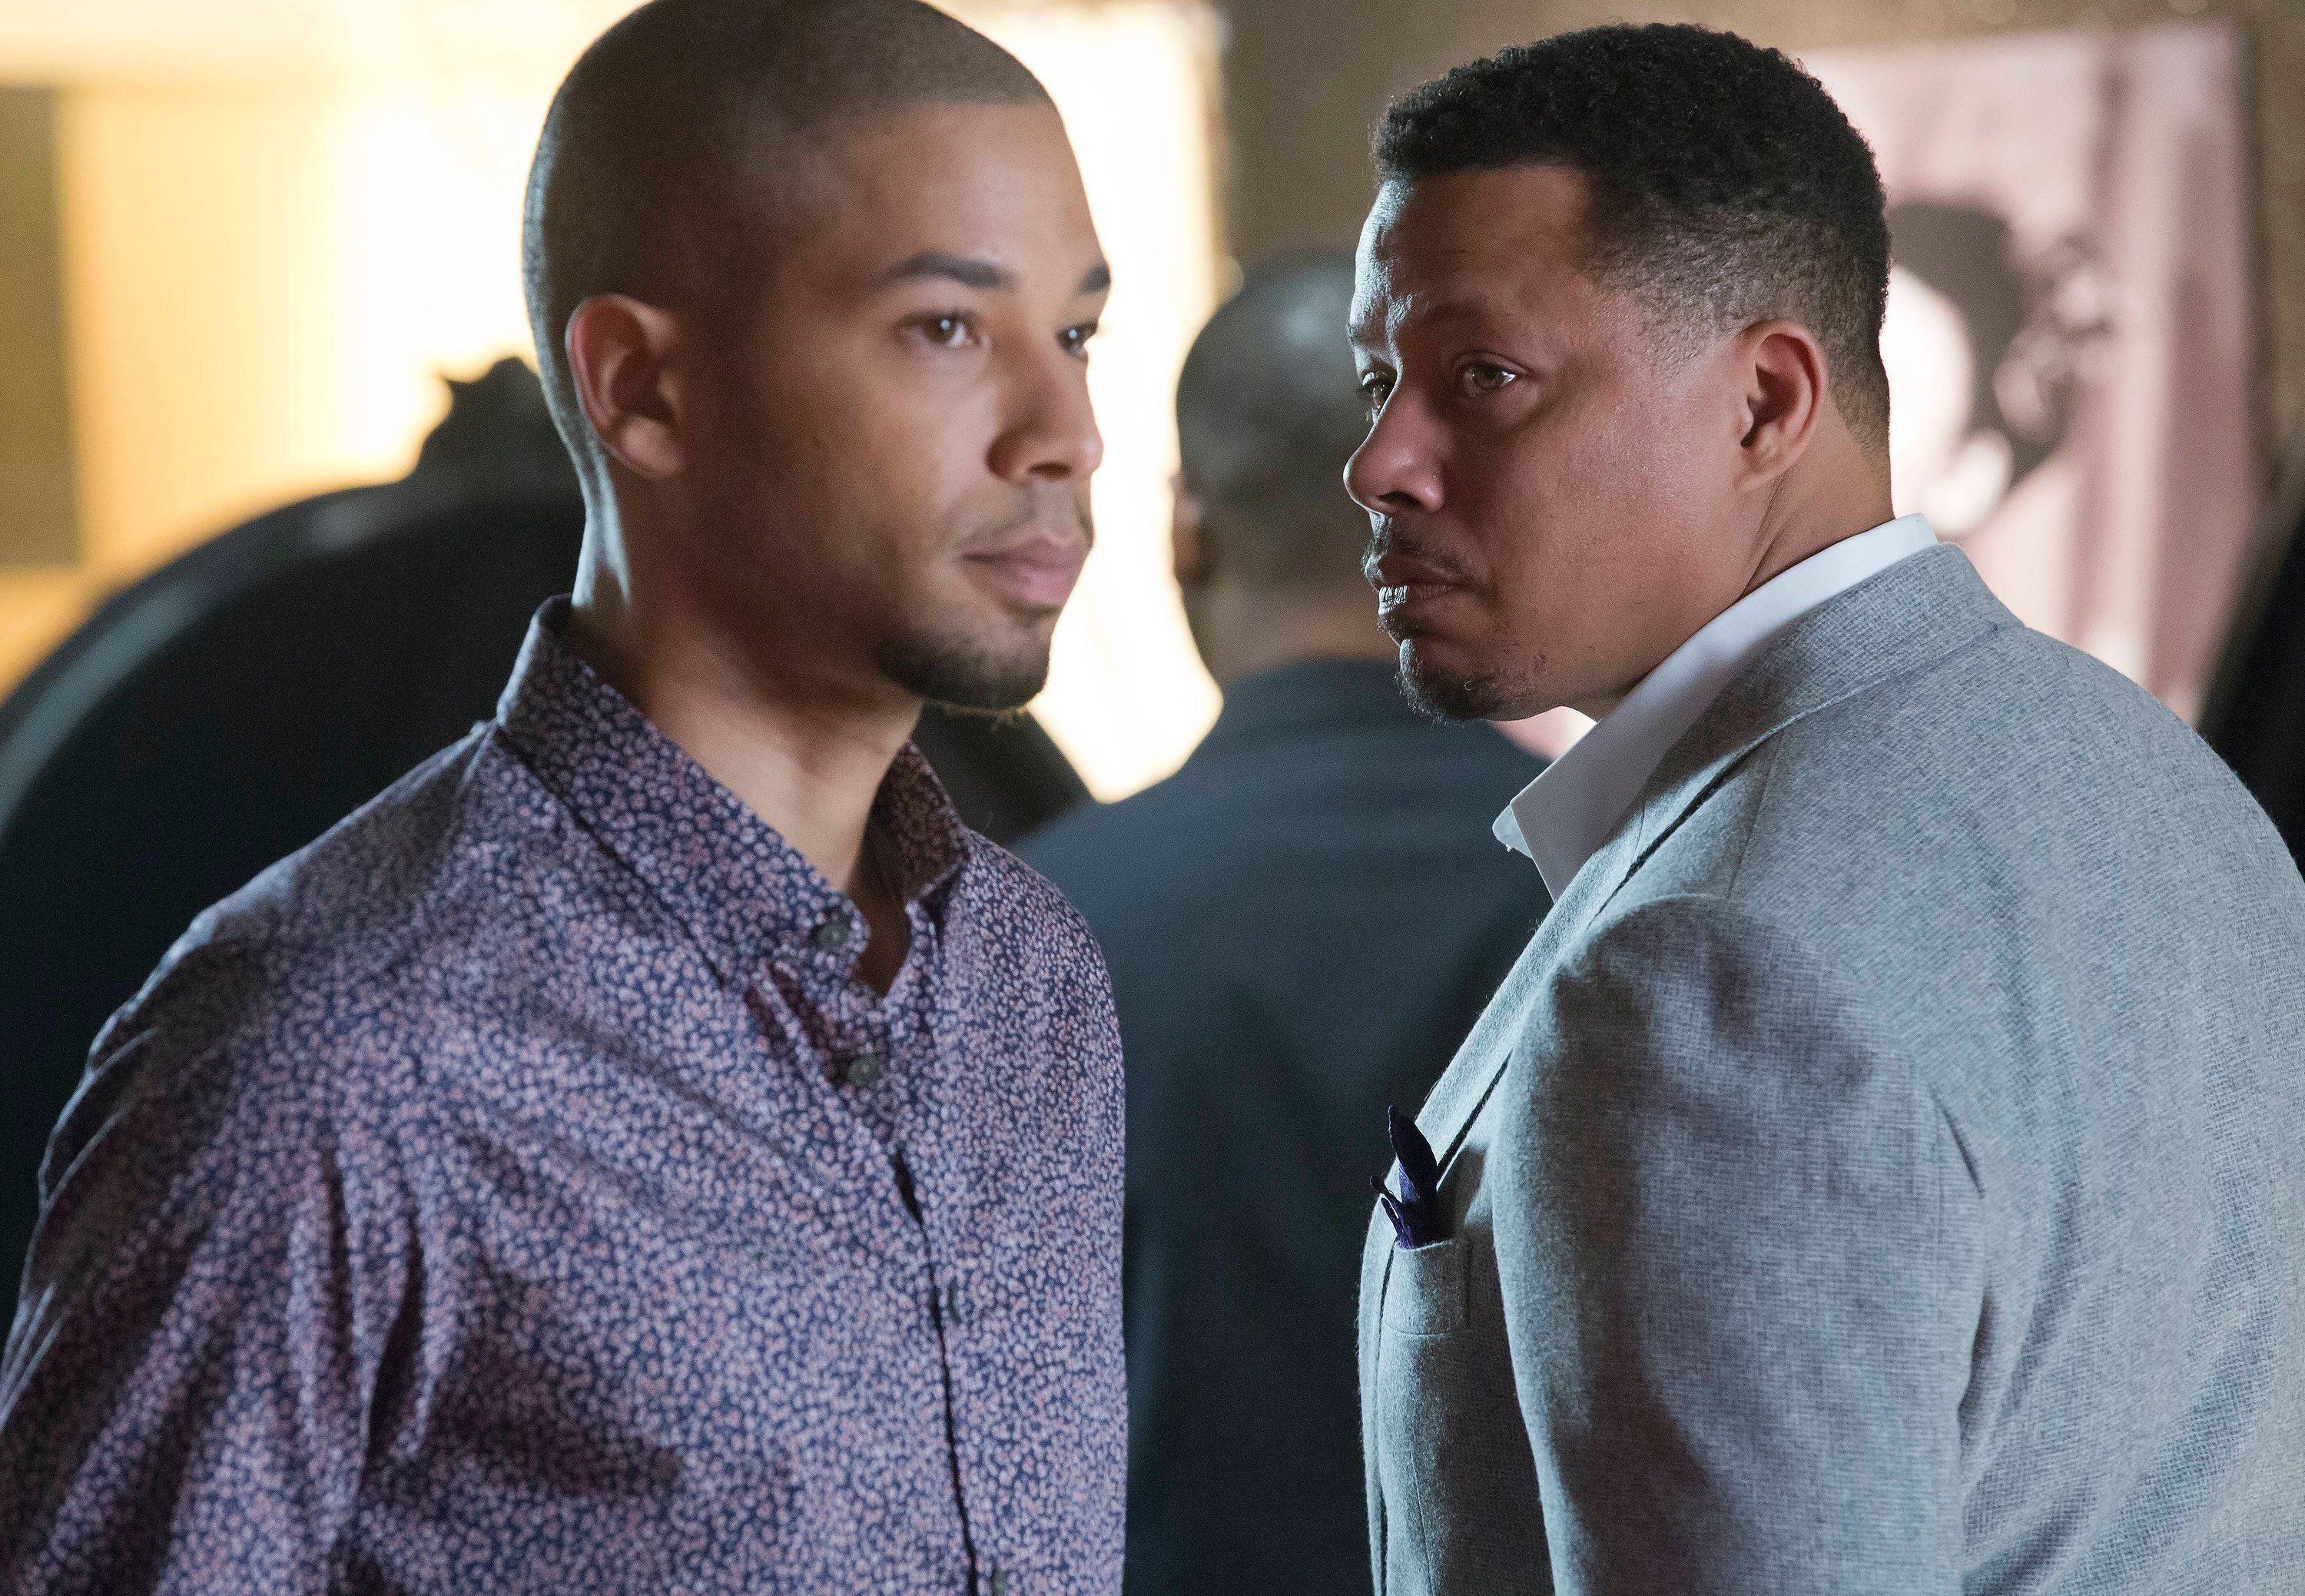 EMPIRE: Lucious (Terrence Howard, R) and Jamal (Jussie Smollett, L) form a music-centered relationship in the special two-hour 'Die But Once/Who I Am' Season Finale episode of EMPIRE airing Wednesday, March 18 (8:00-10:00 PM ET/PT) on FOX. (Photo by FOX via Getty Images)